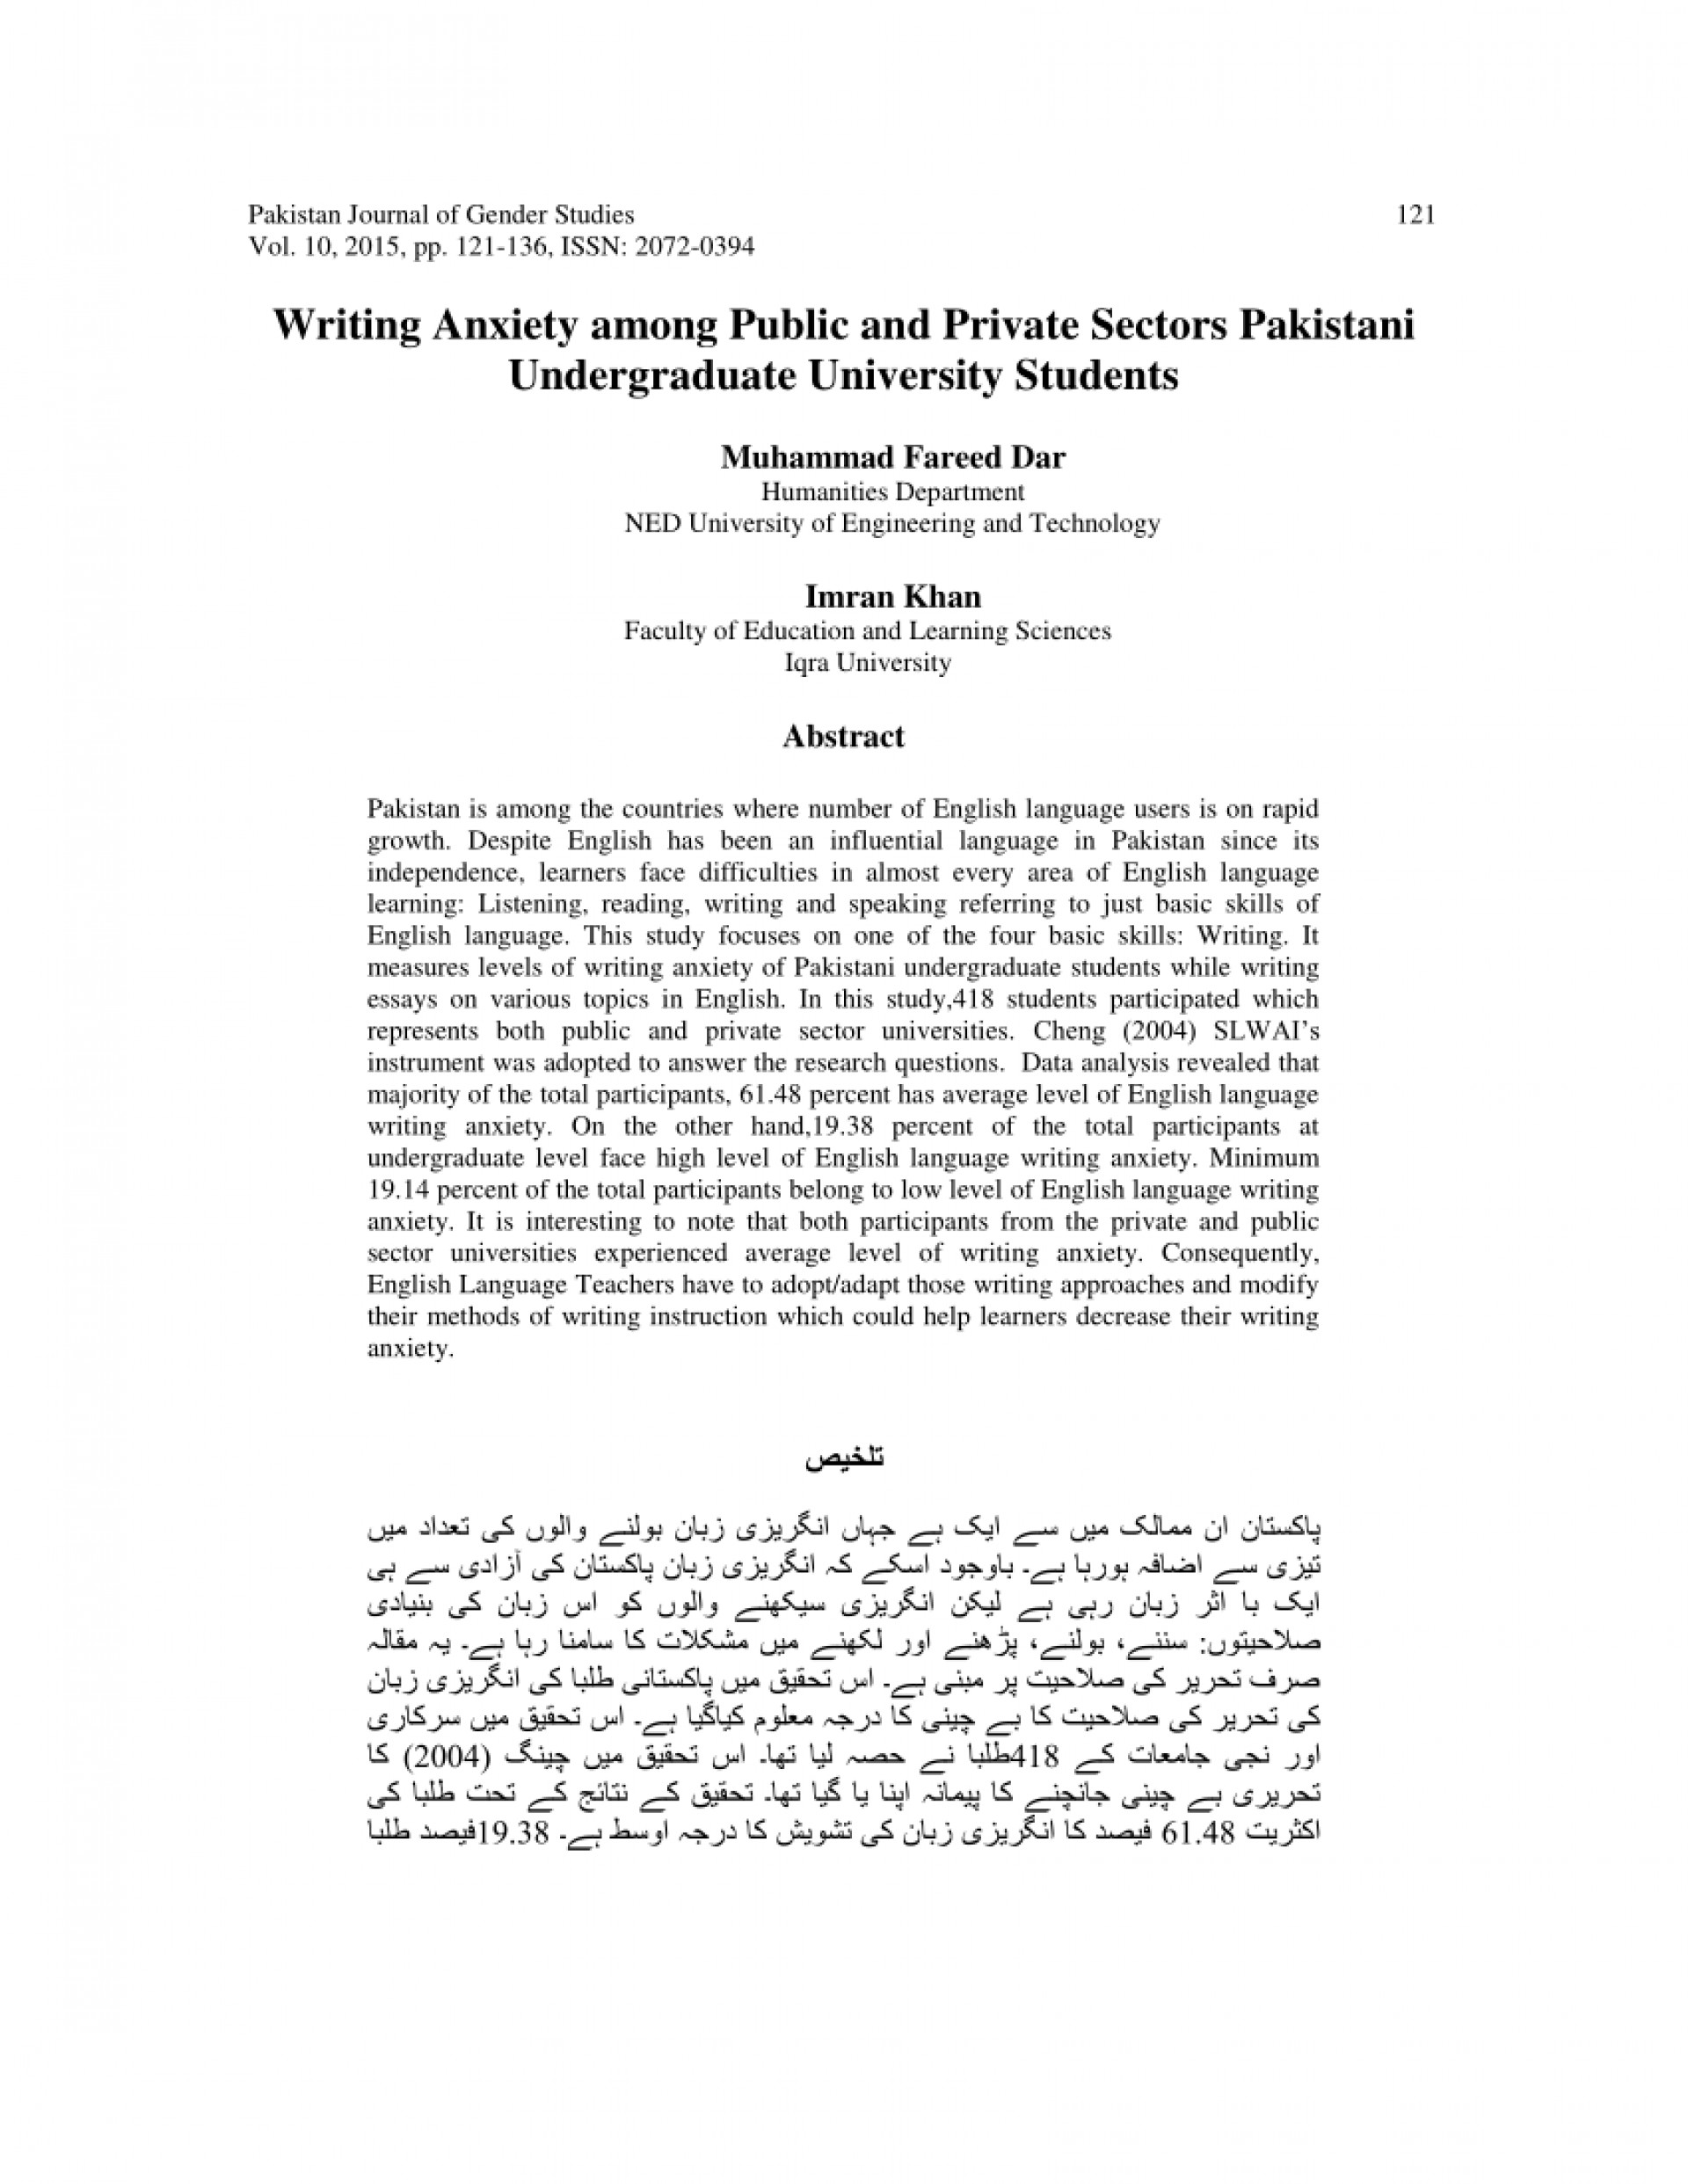 009 Research Paper Essay On Education System In Pakistan With Outline Impressive Our 1920